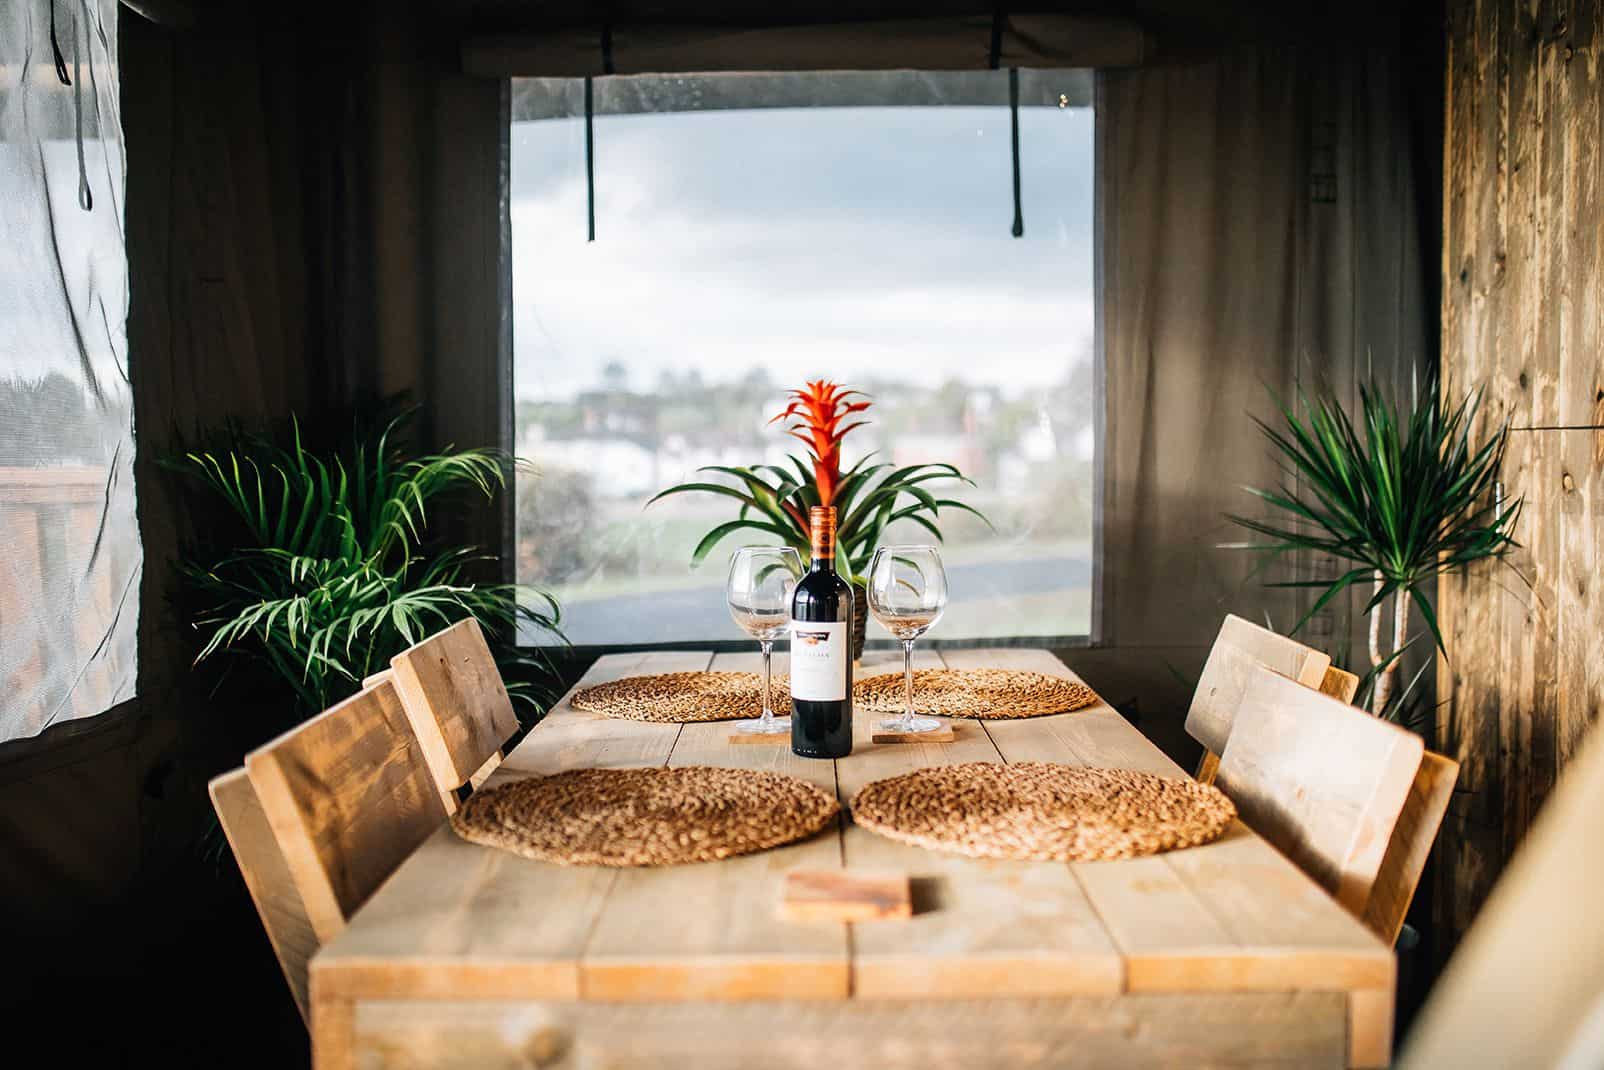 wooden-table-with-a-bottle-of-red-wine-inside-lets-go-hydro-safari-tent